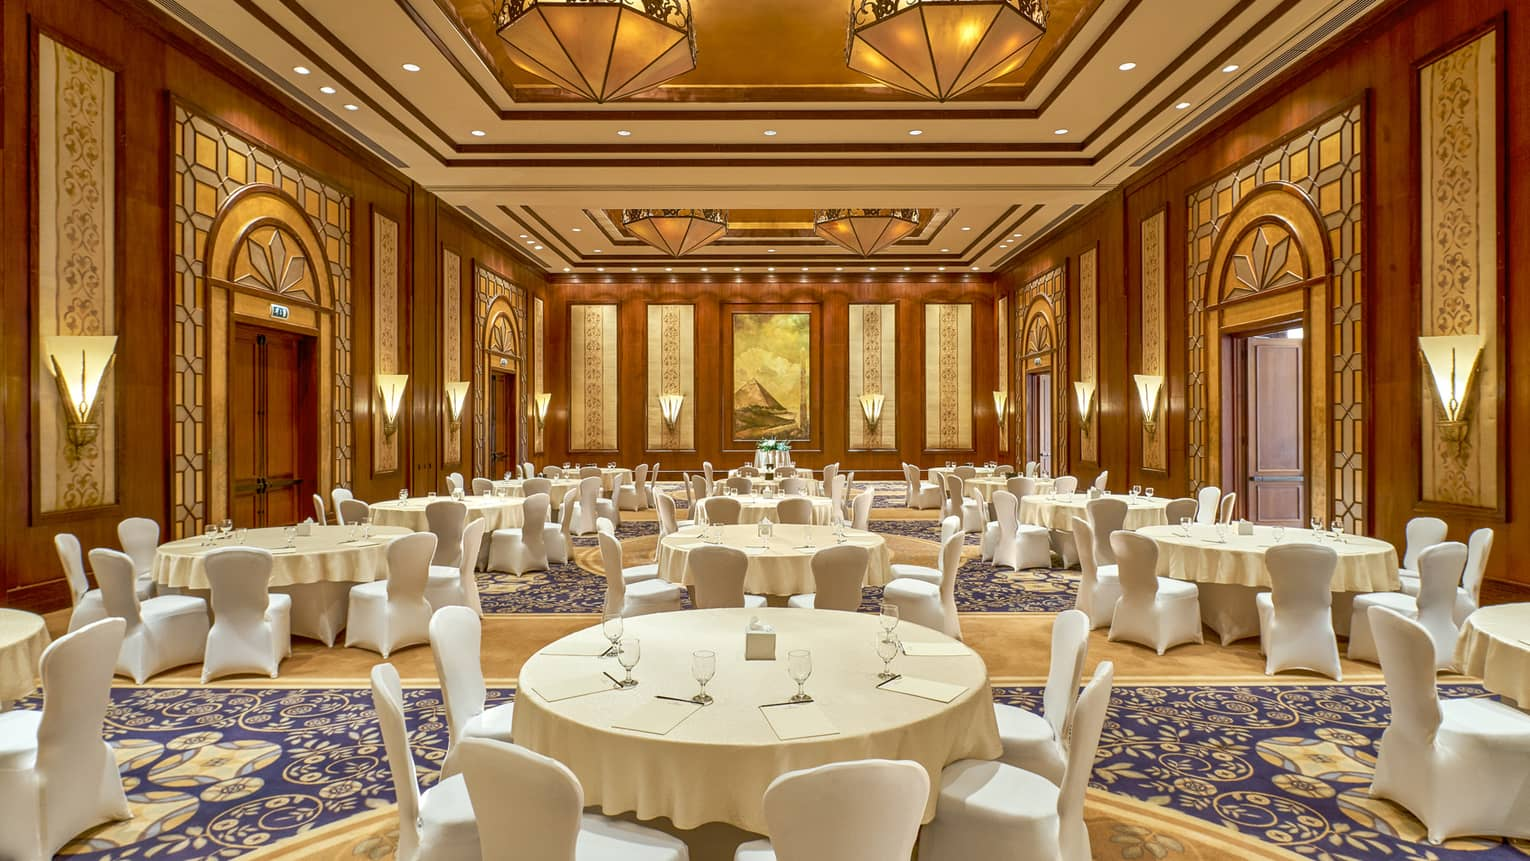 Tiran Ballroom with large white banquet tables, chairs under gold and wood Art Deco style lights, walls